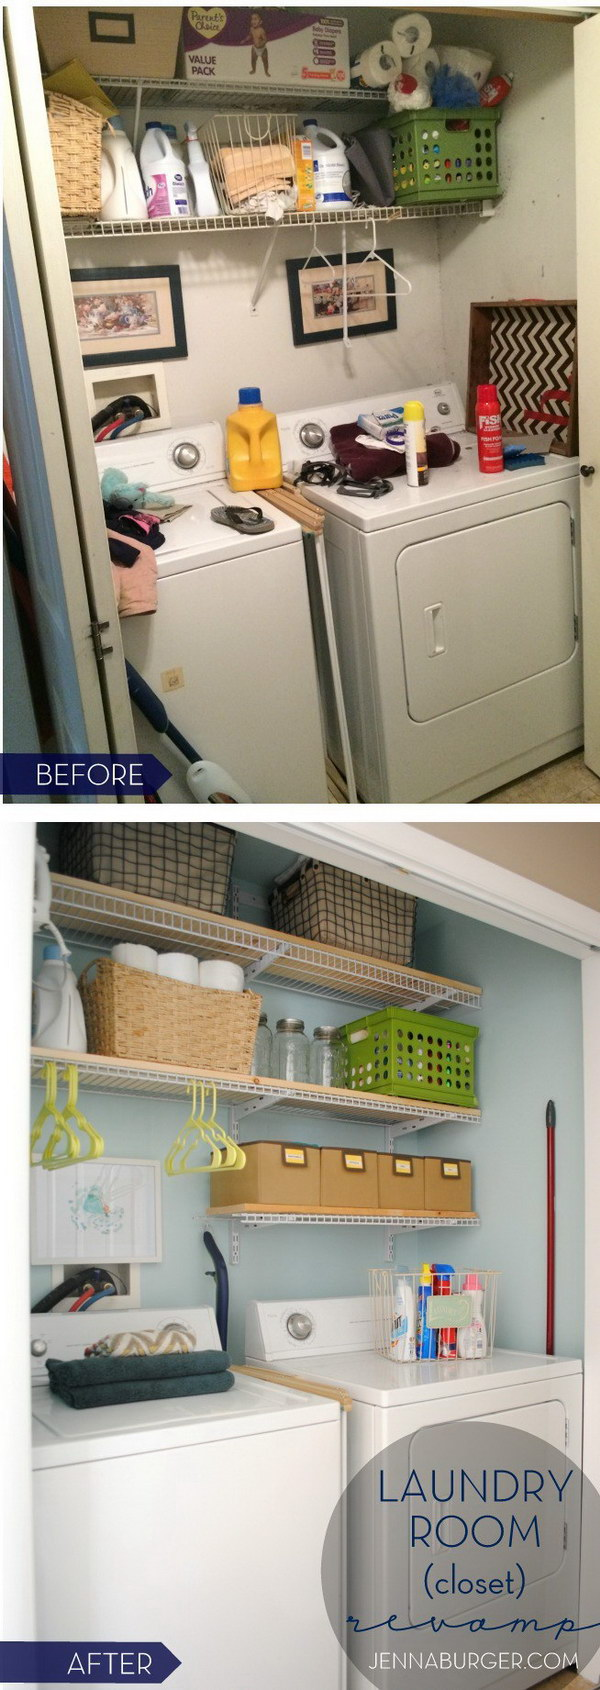 DIY Laundry Revamp with More Open Sheving Storage.